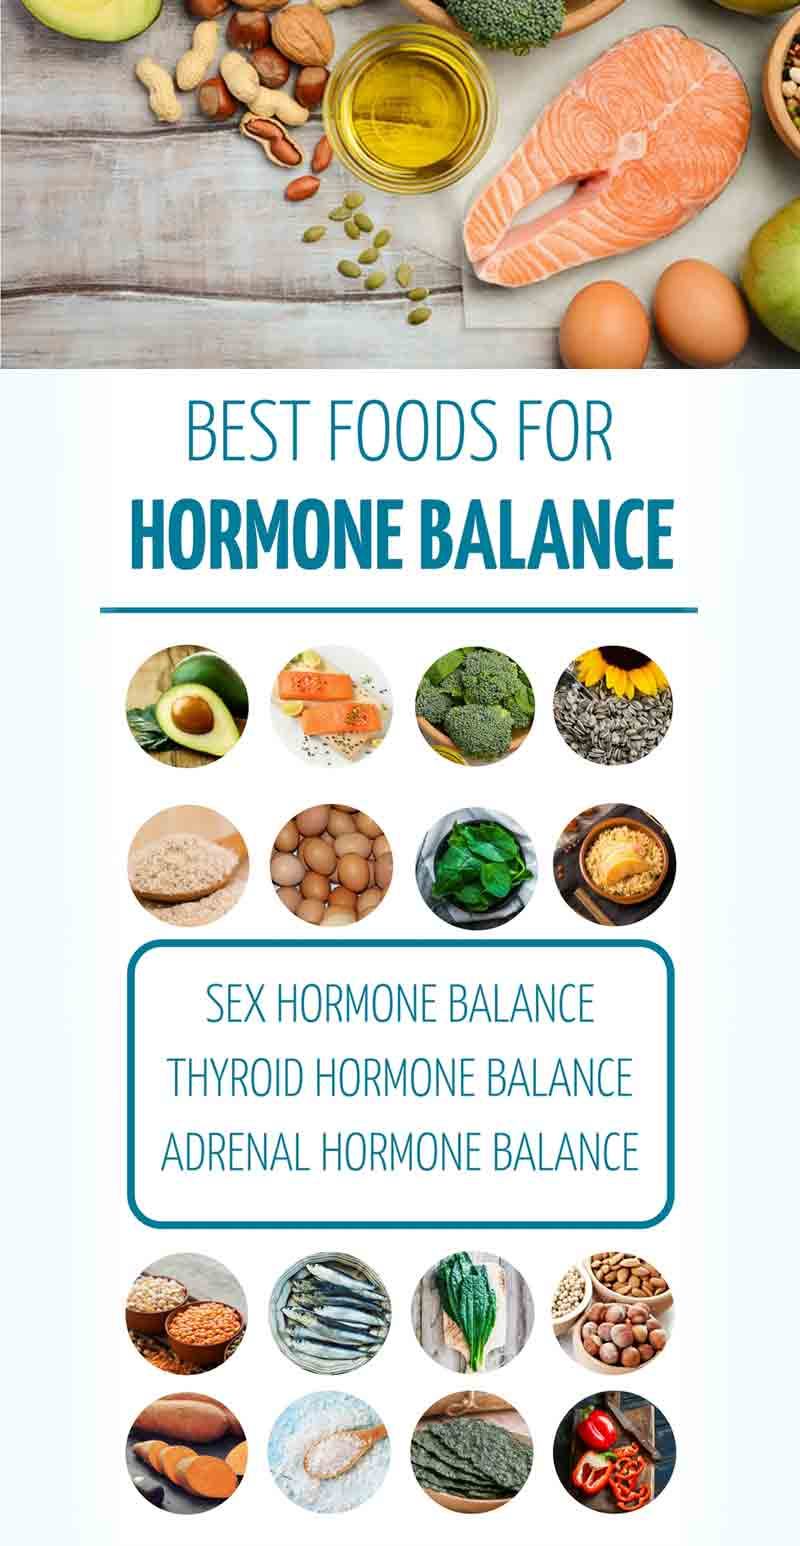 Best foods for Hormone Balance